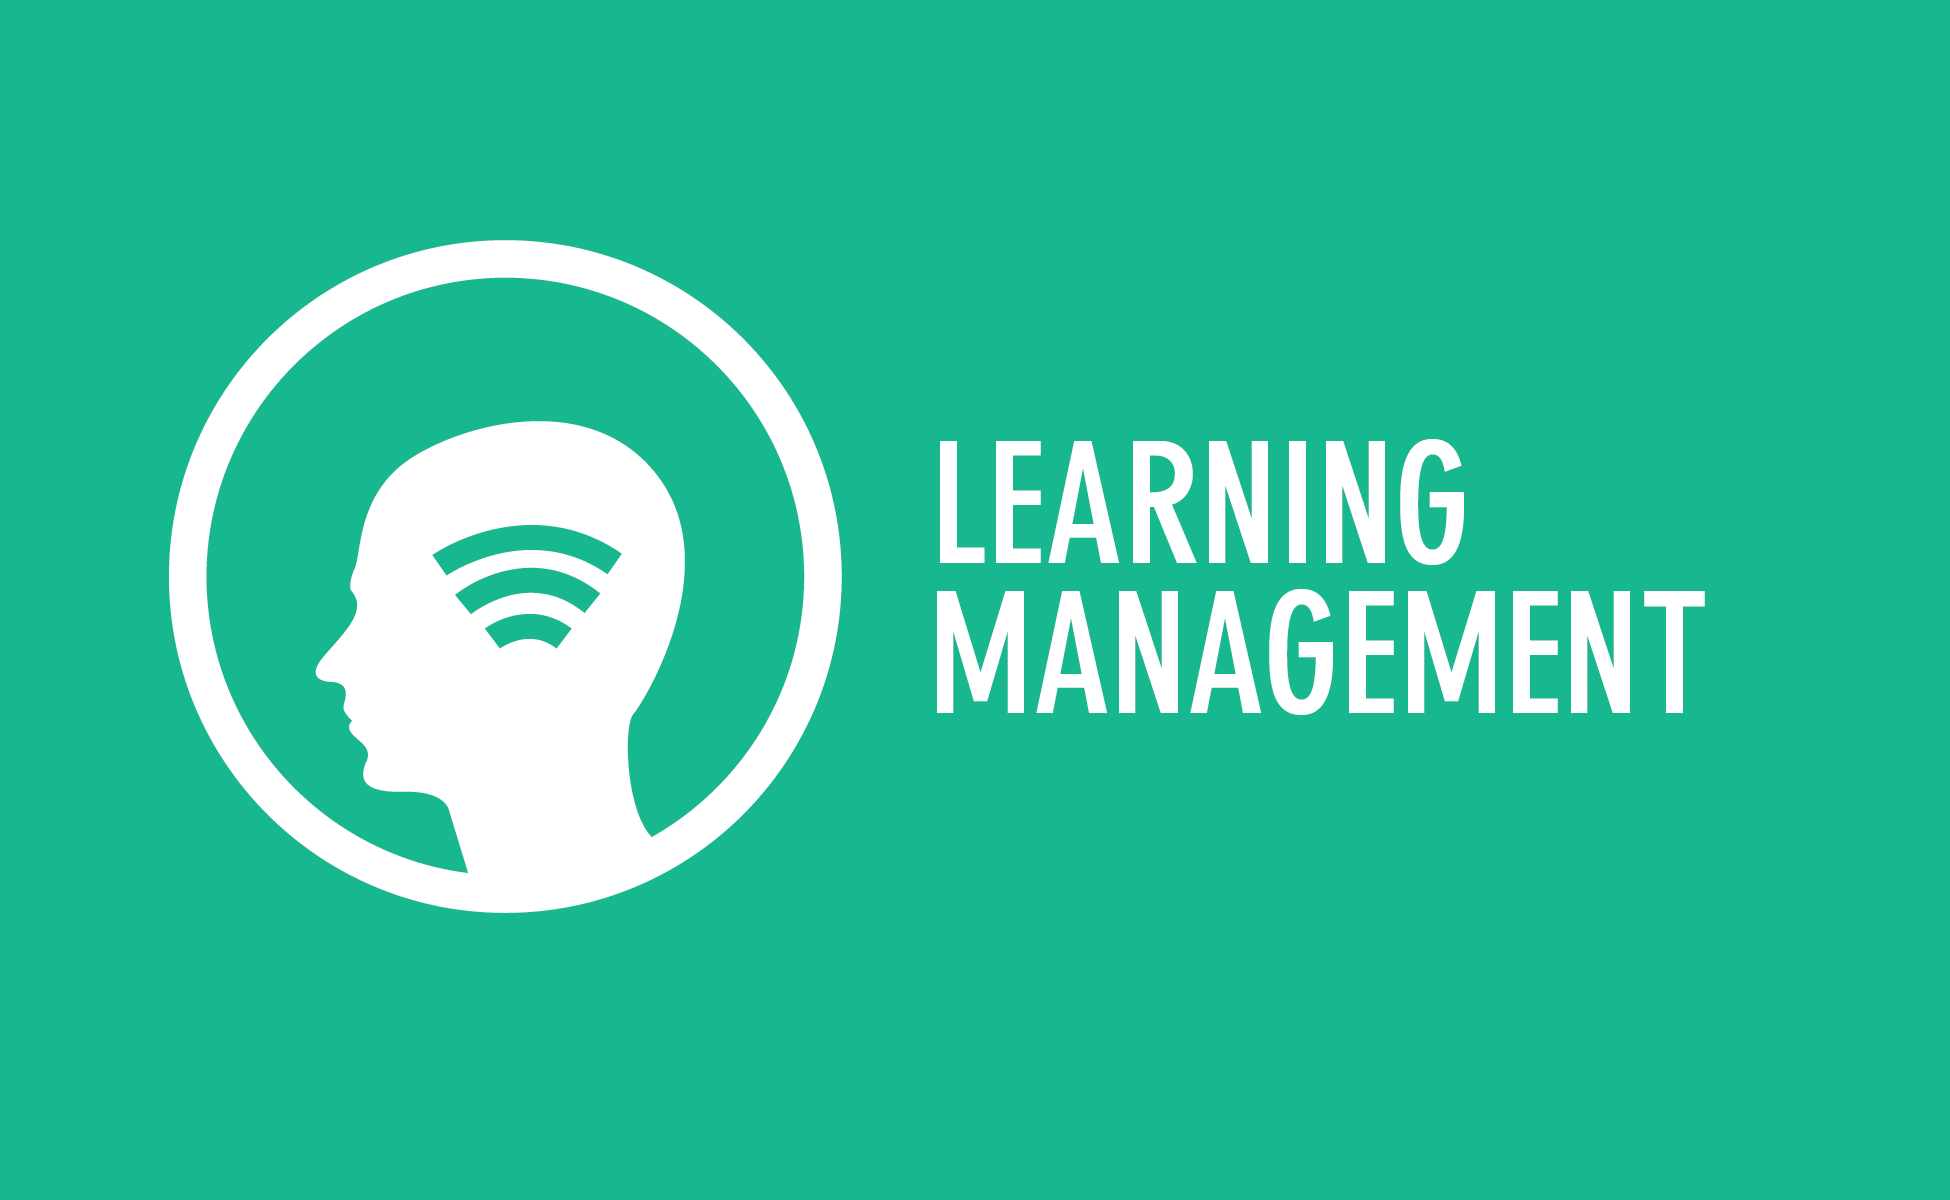 Learning Management-02.png